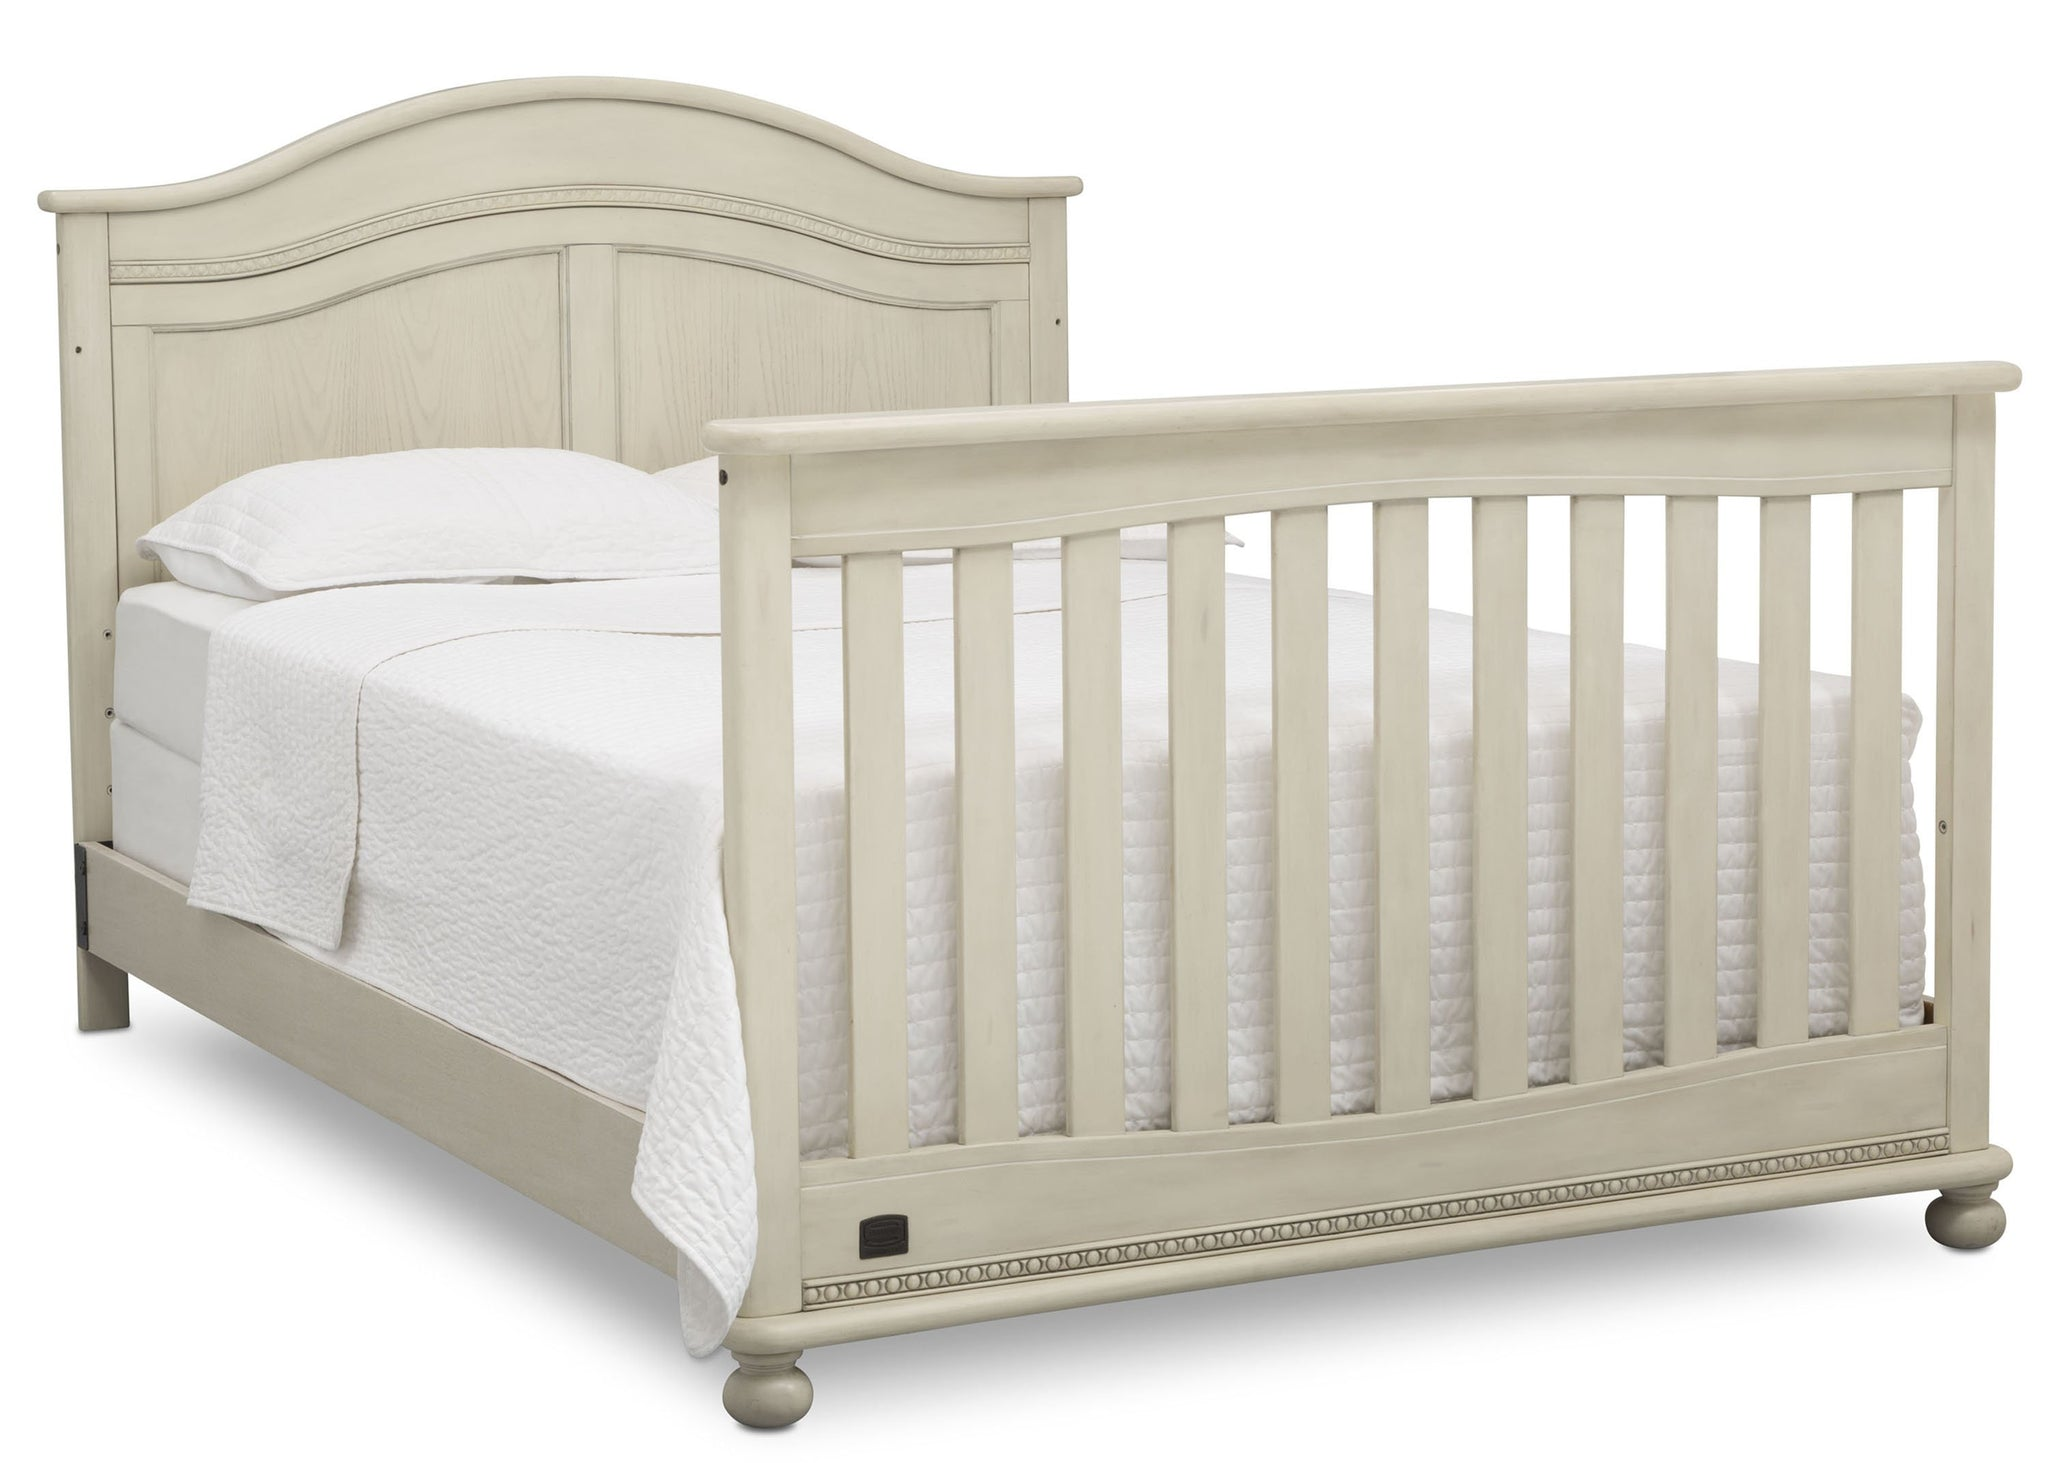 Simmons Kids Antique White (122) Bedford 4-in-1 Convertible Crib (W337150) Full bed, a6a